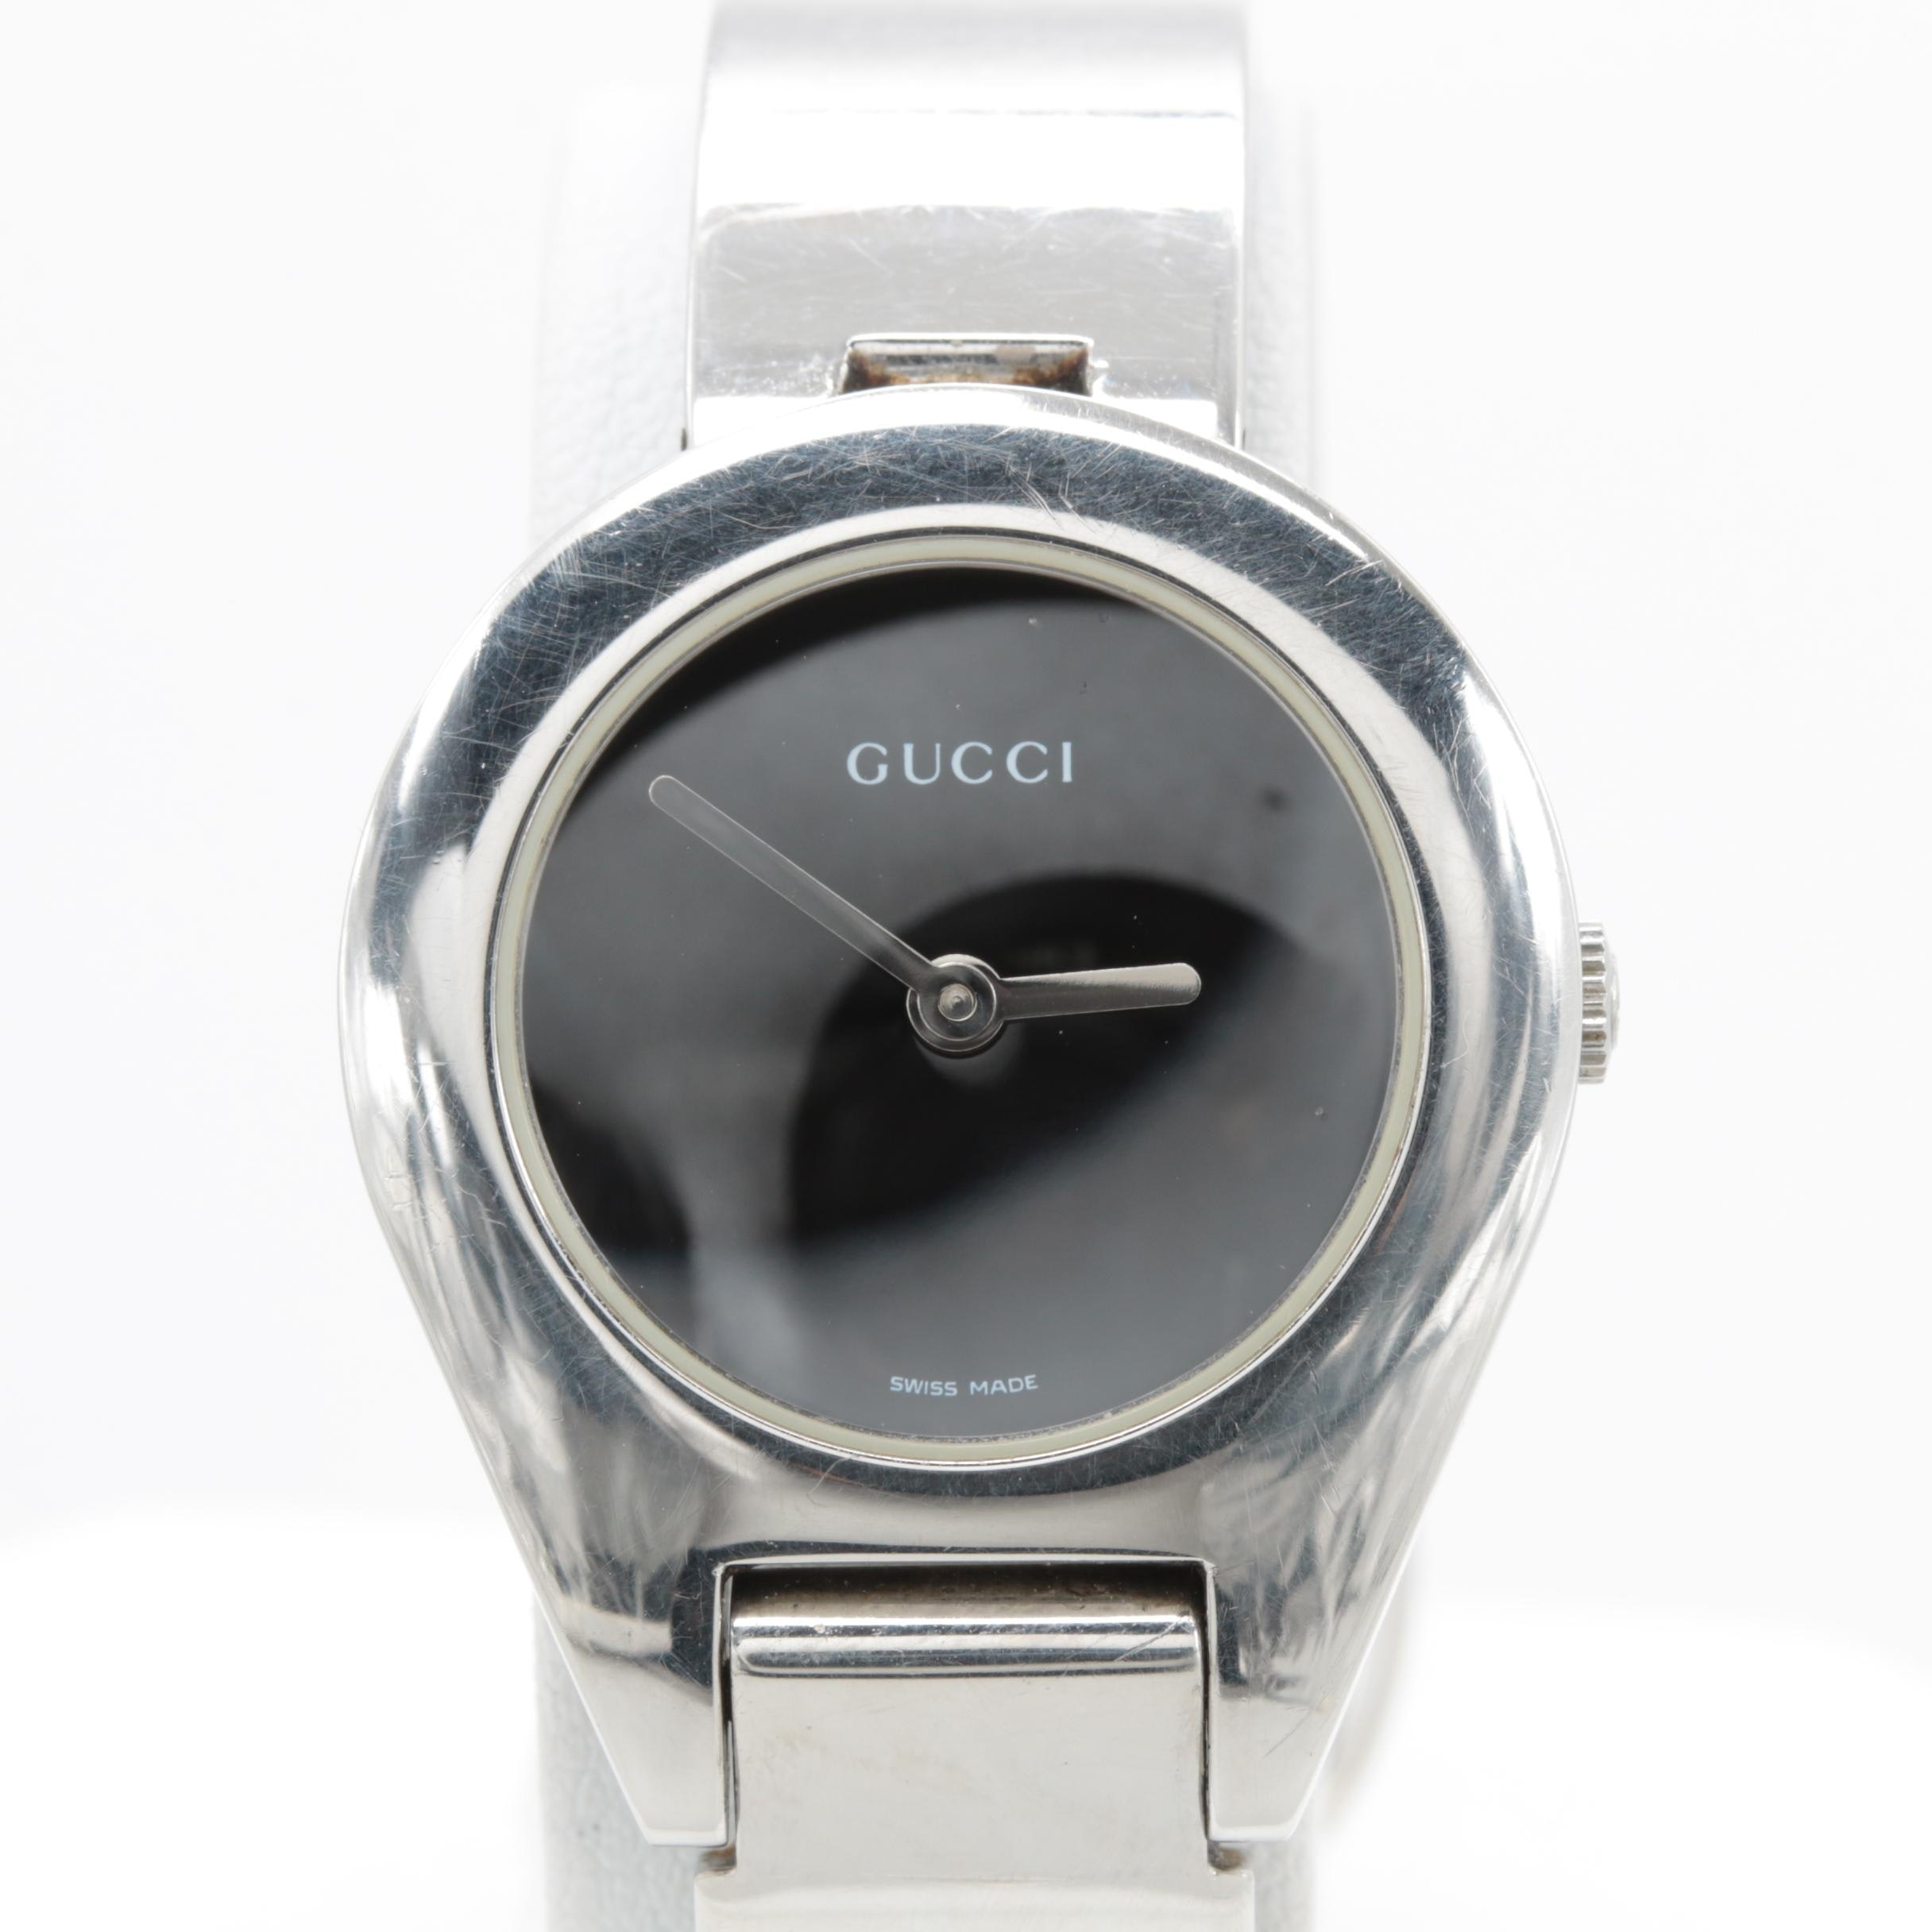 Gucci 6700L Stainless Steel Wristwatch